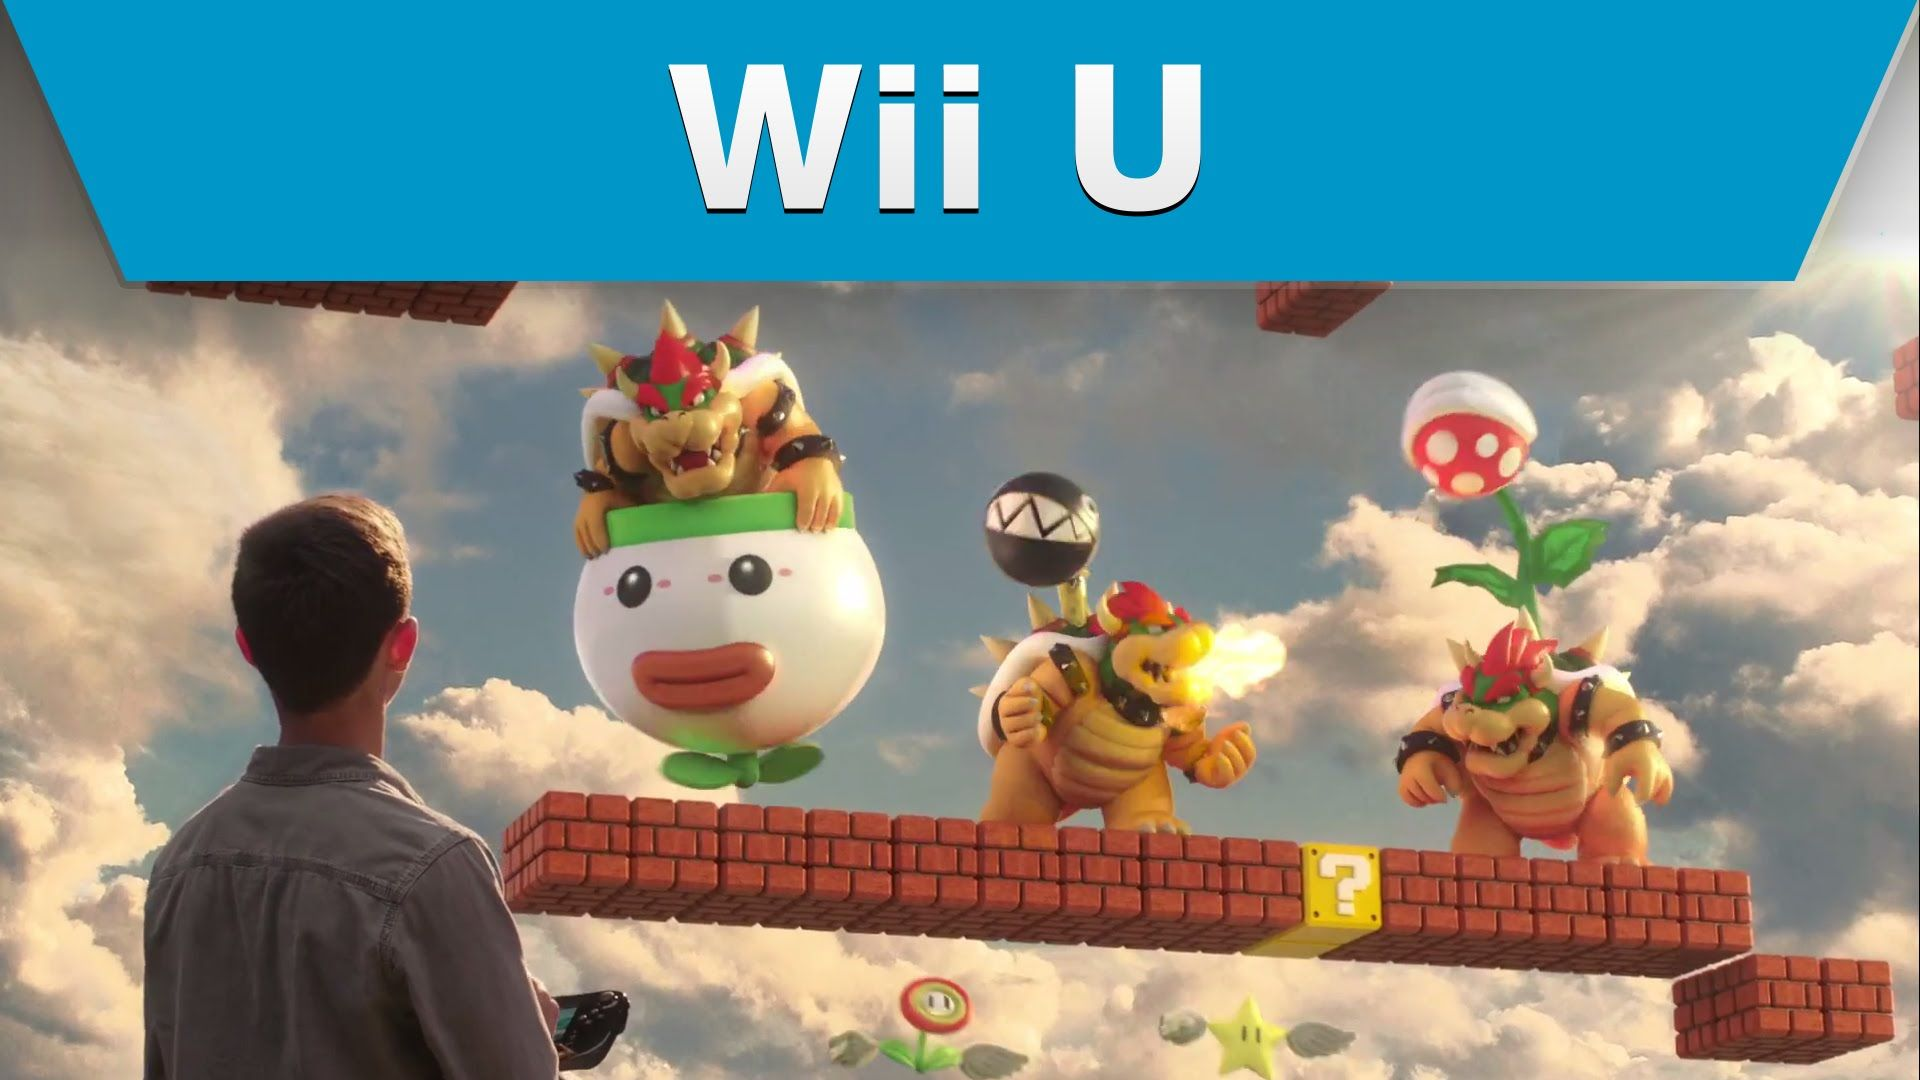 Wii U Game Trailer : This trailer has me pumped to play super mario maker for